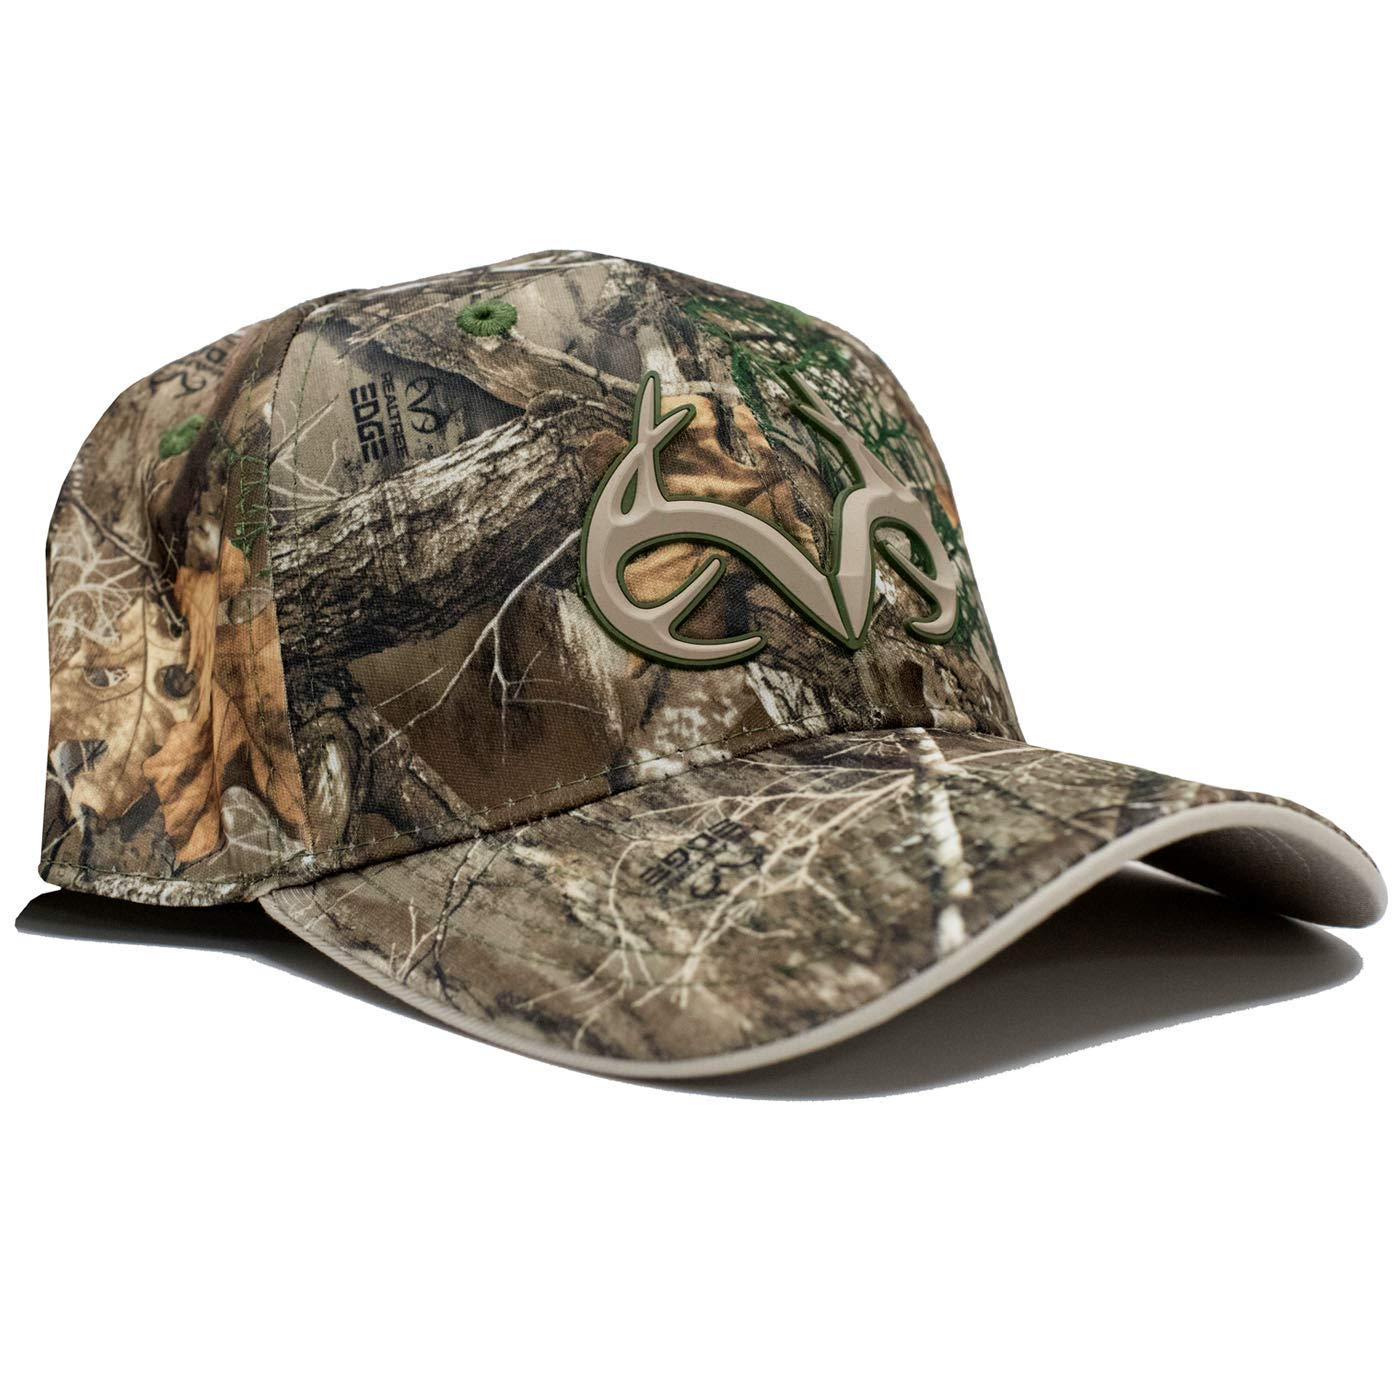 Realtree Edge Camo Performance Fitted Hat (Small/Medium) by Realtree